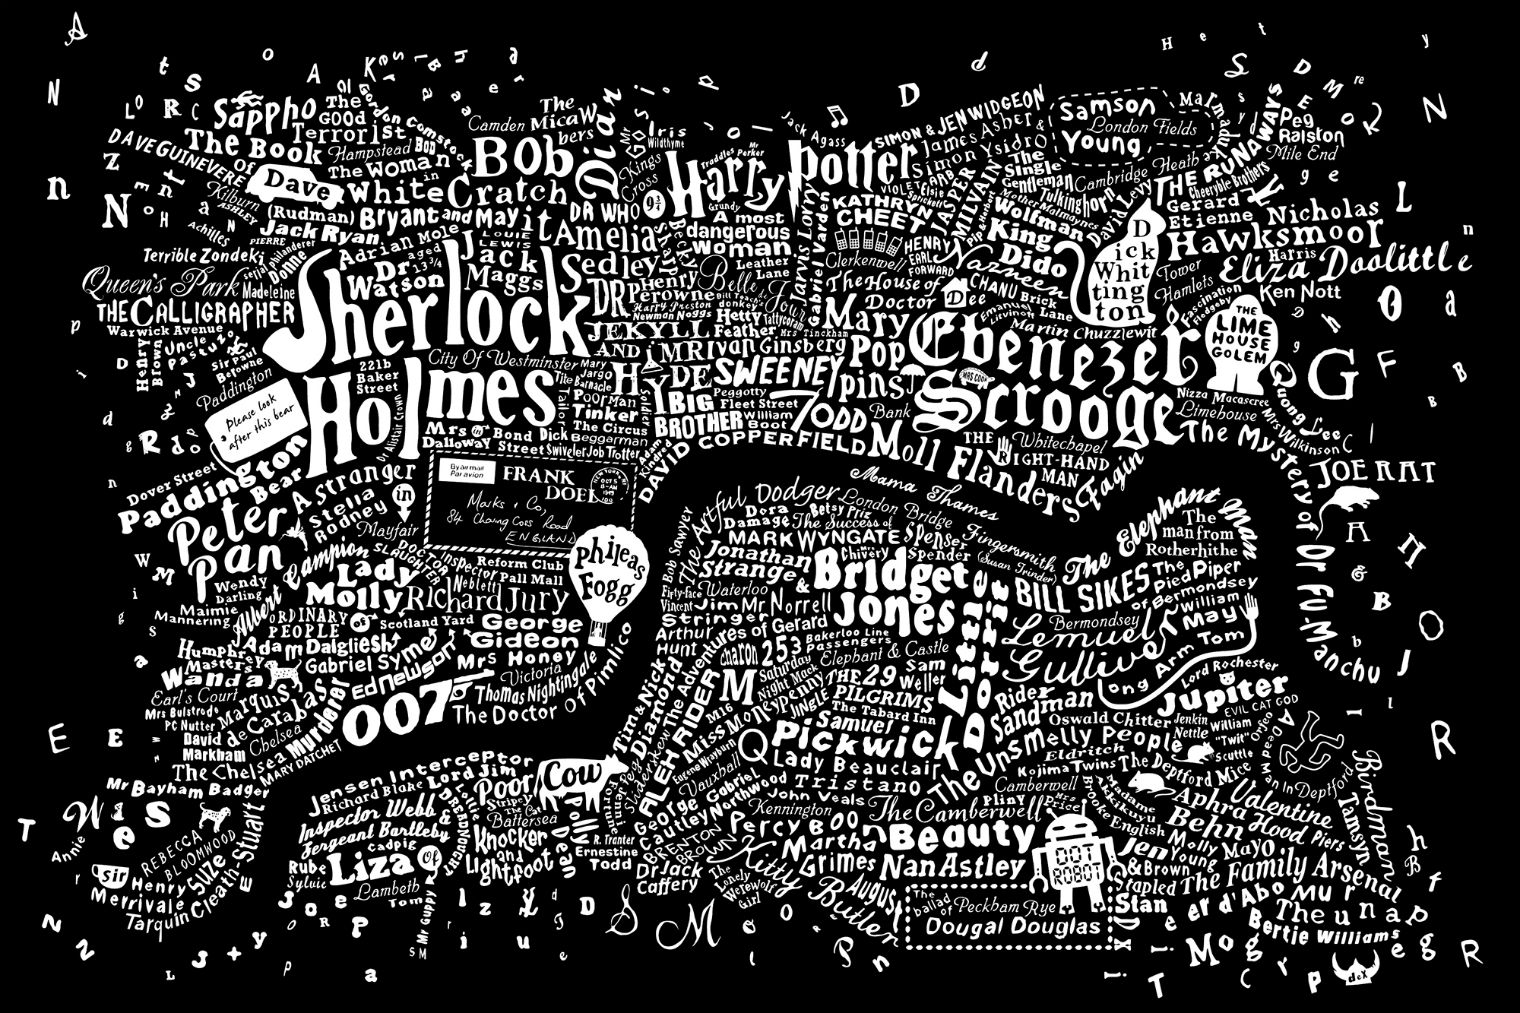 This Amazing Literary Map Of London Was Created By Graphic Artist Dex In Collaboration With Interior Designer Anna Burles Wow See The Large Version At